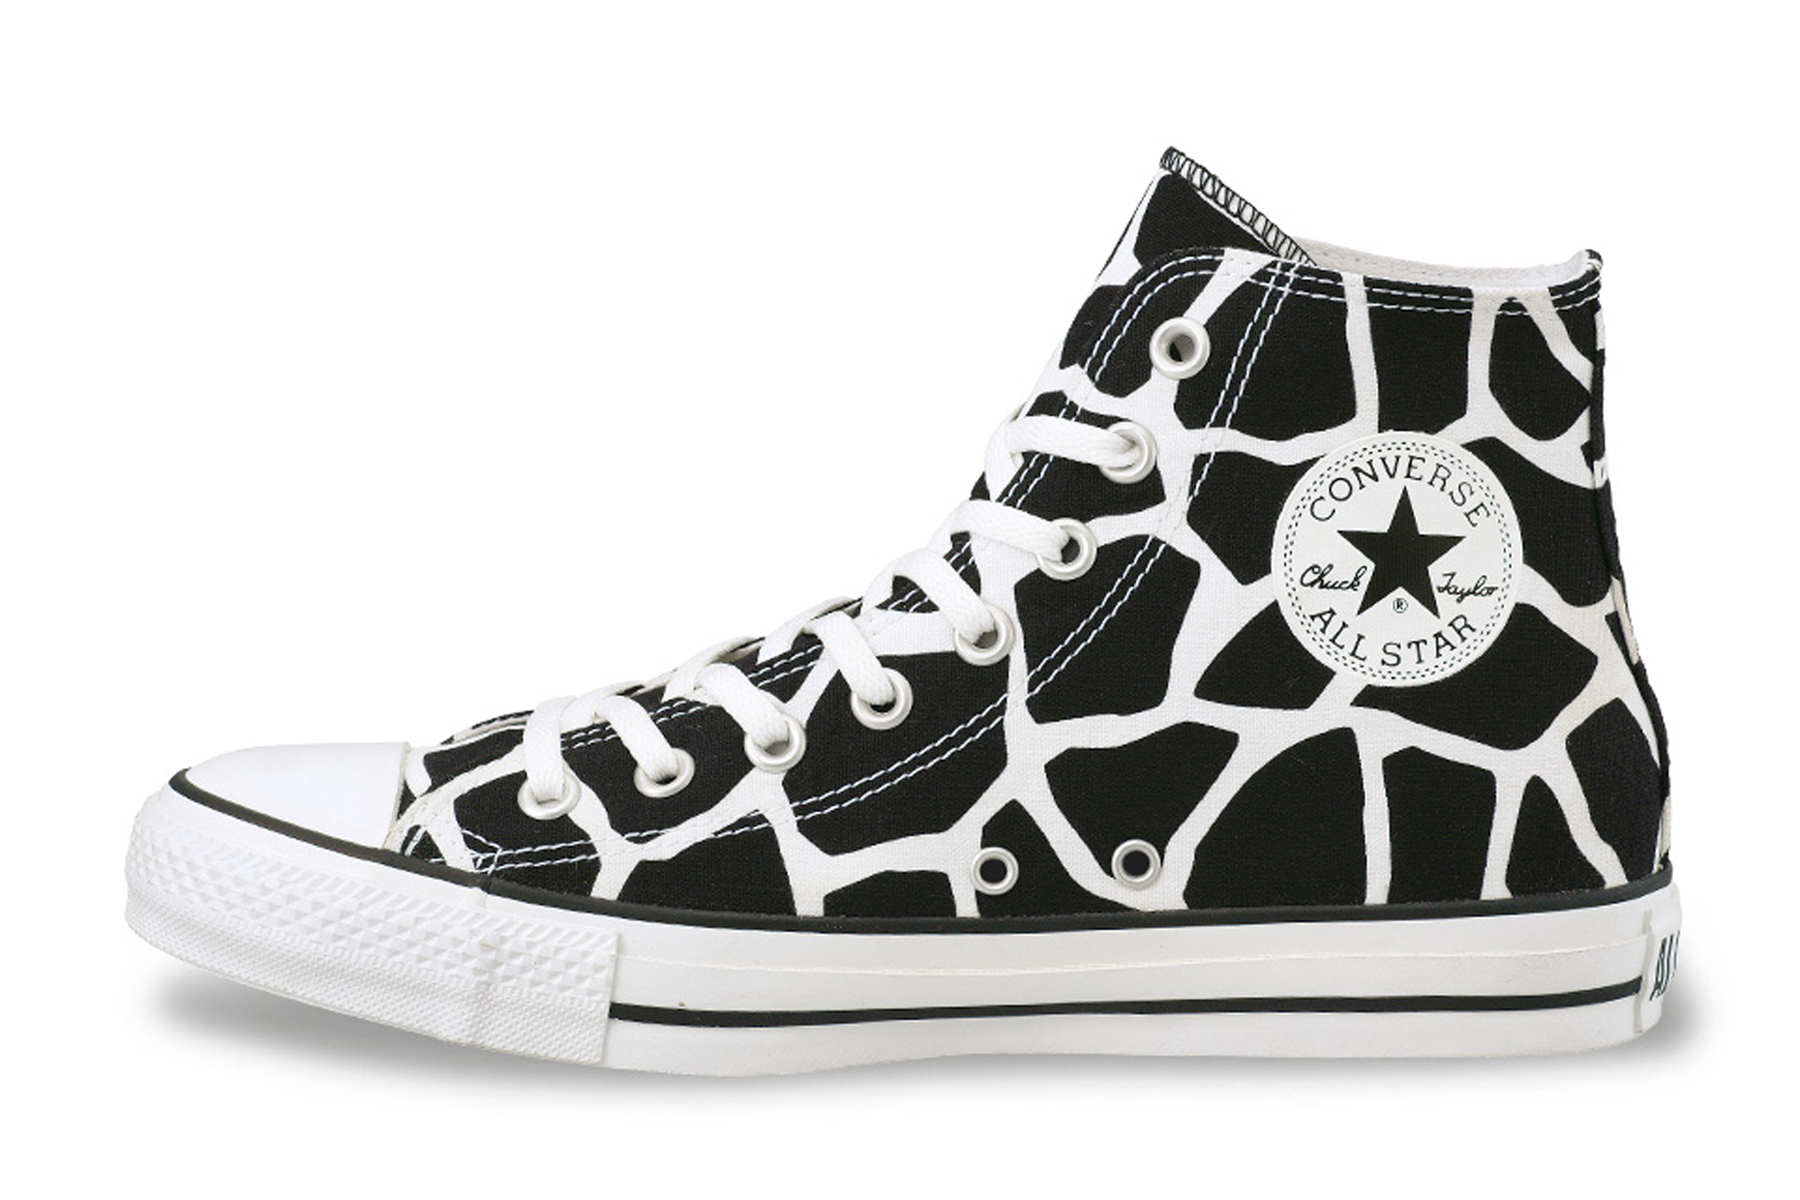 converse japan chuck taylor all star anm hi collection